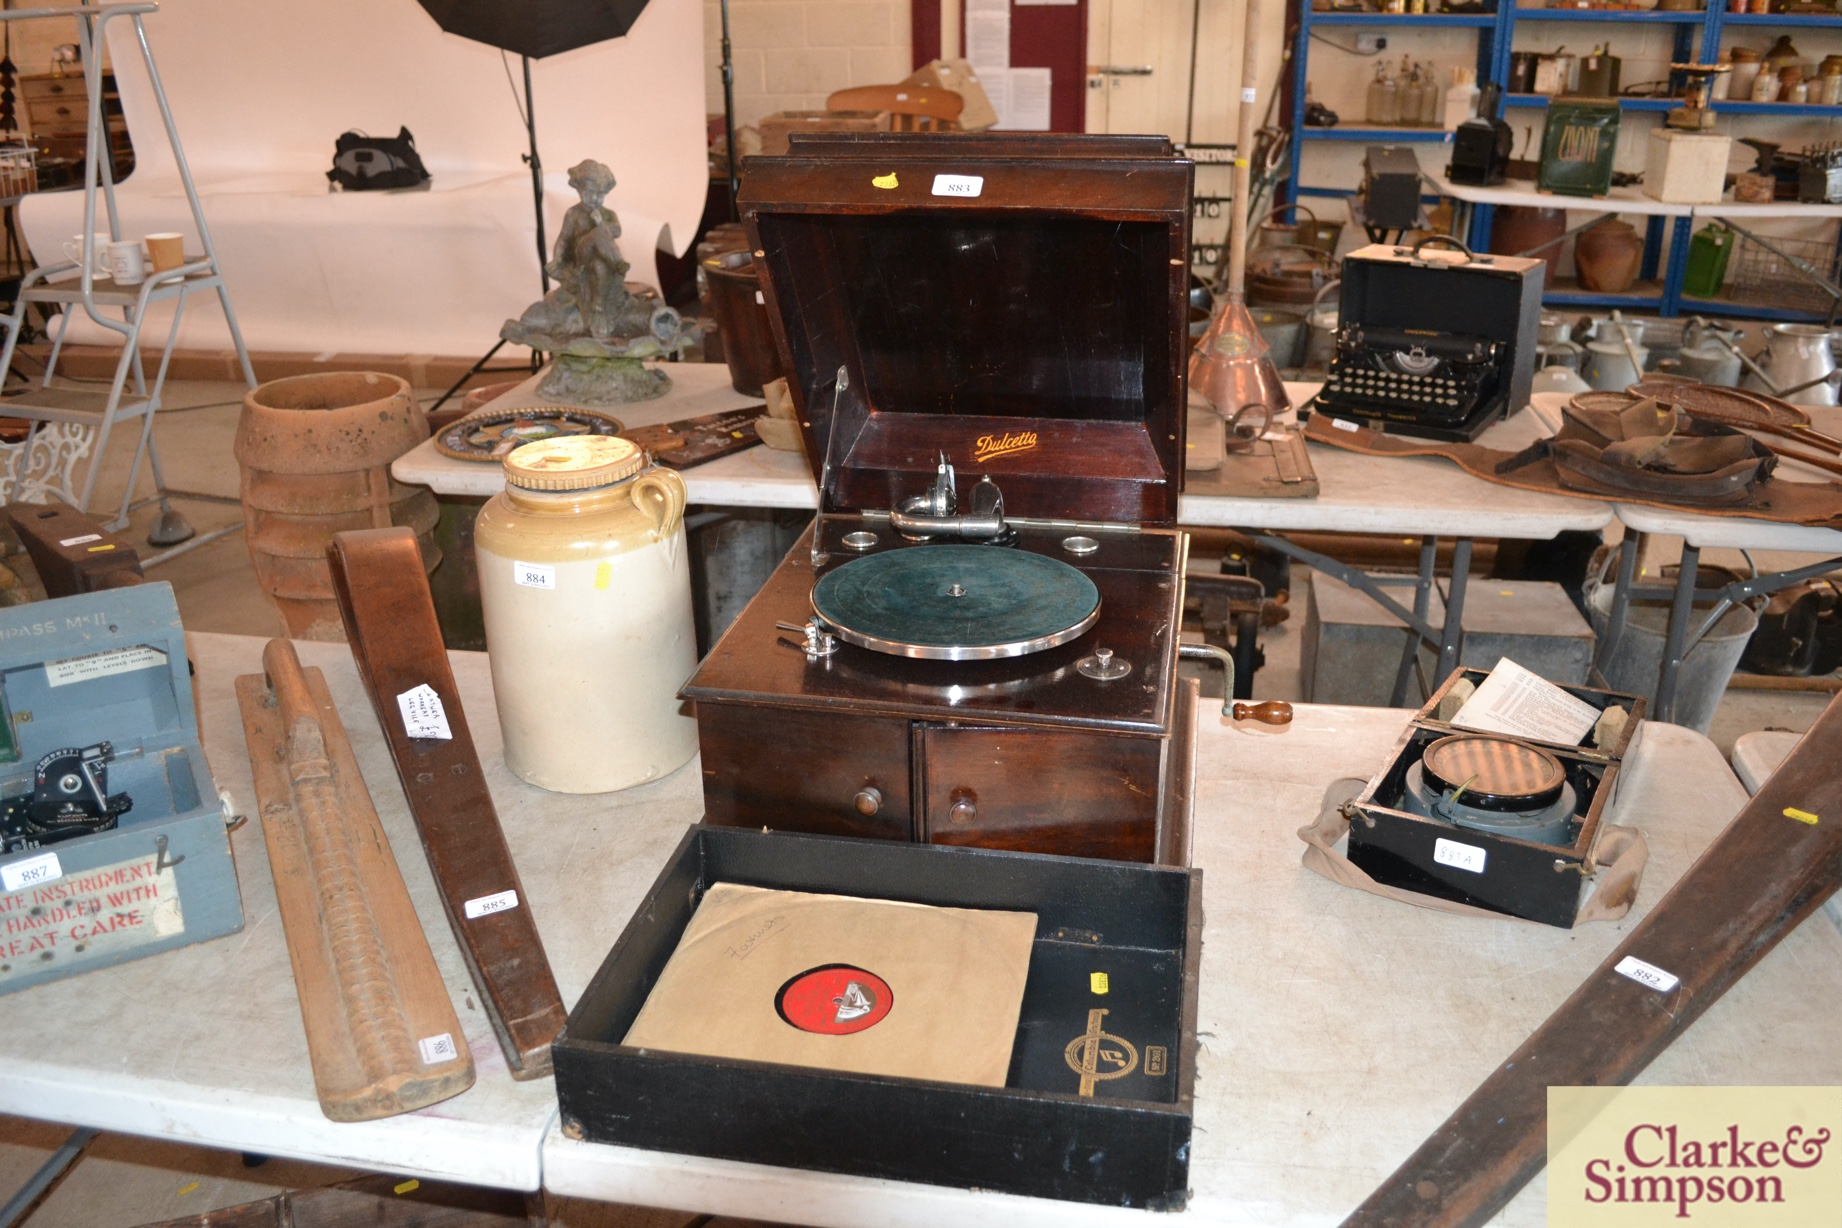 A Dulcetto table model gramophone and ten 78rpm re